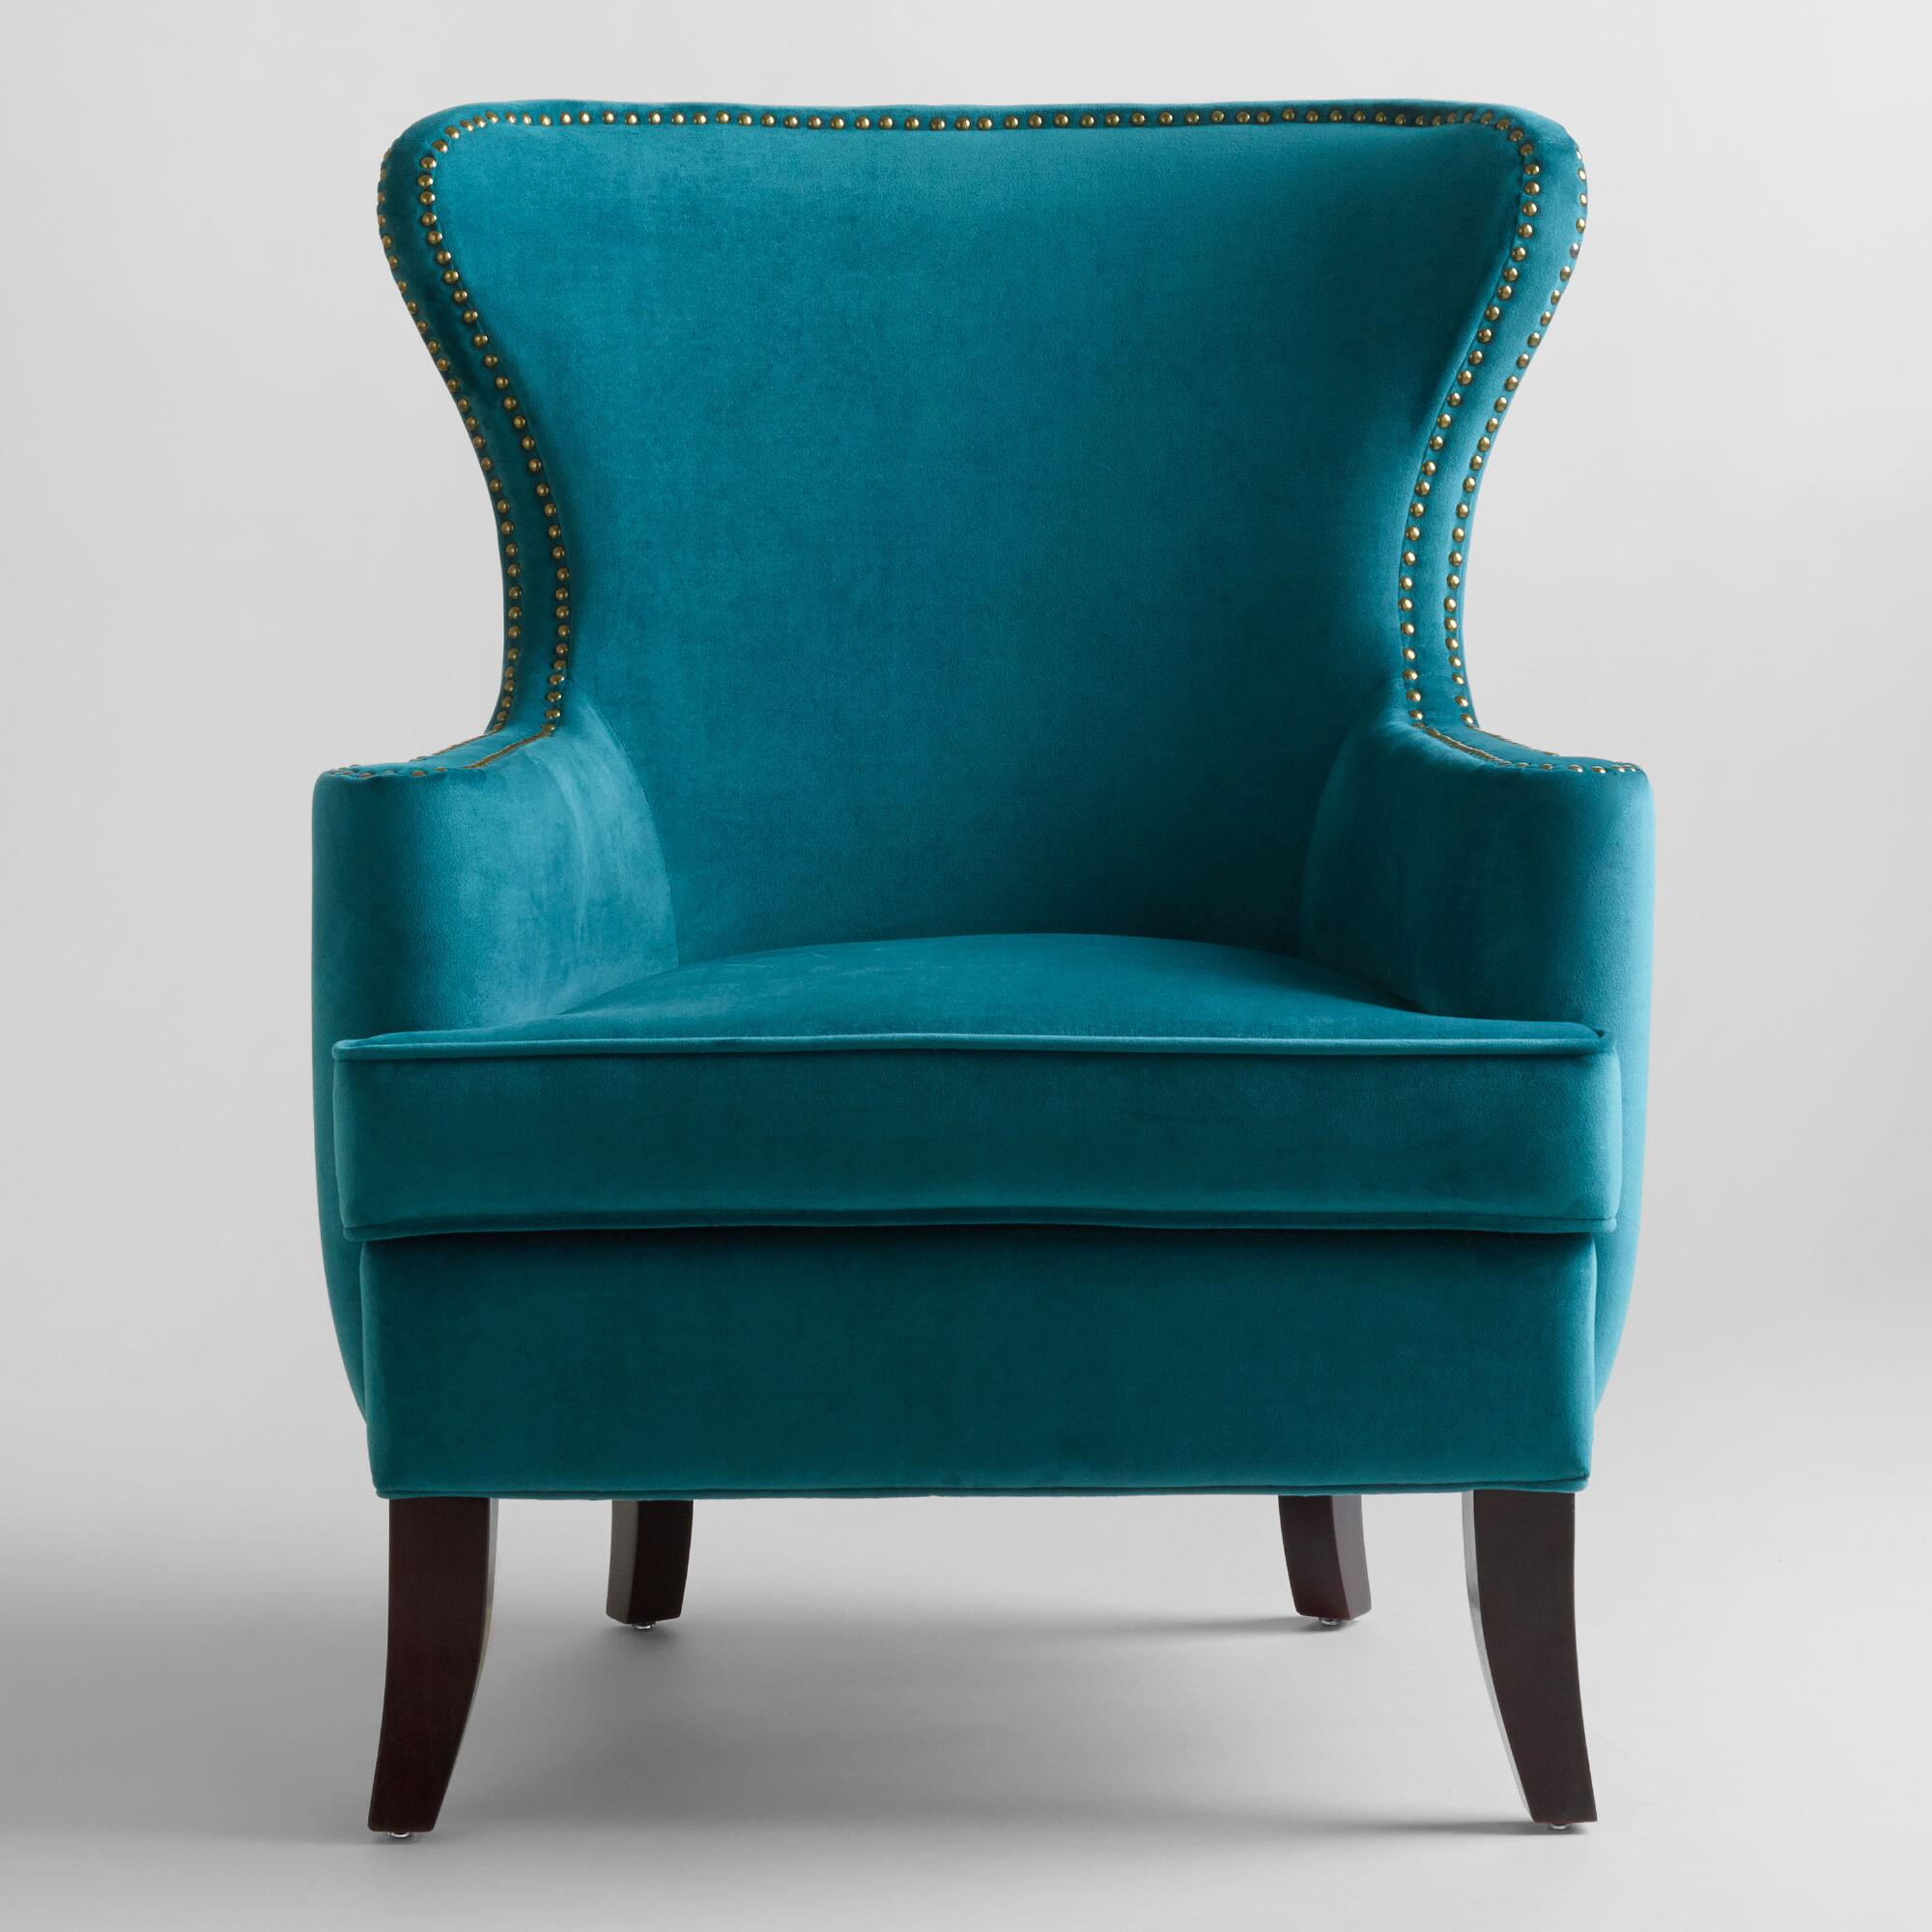 Teal Chair Pacific Blue Elliott Wingback Chair World Market